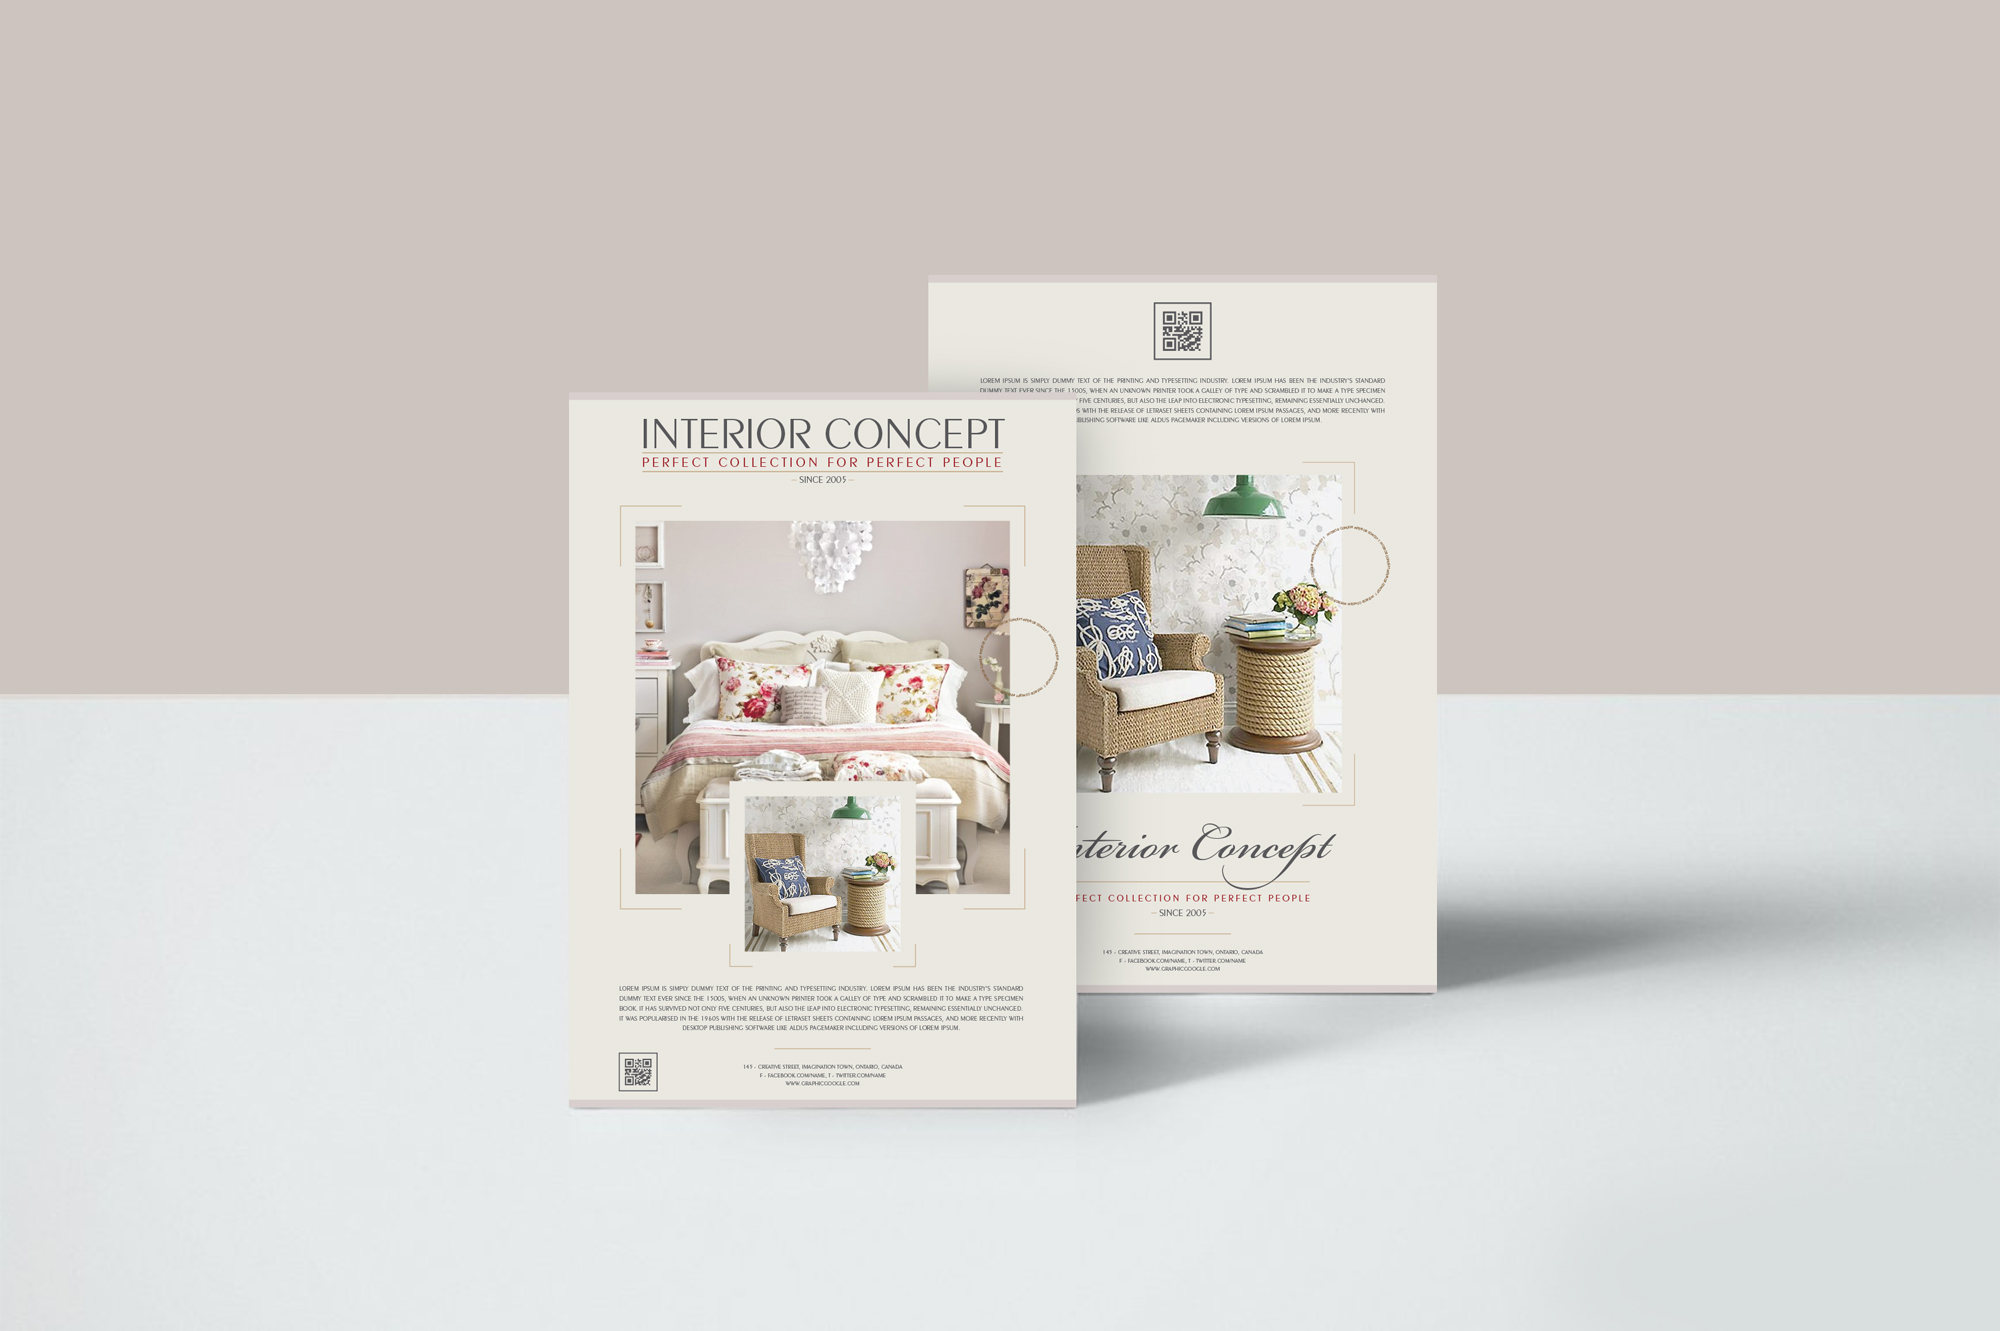 Free-Interior-Concept-Flyer-Design-Templates-1